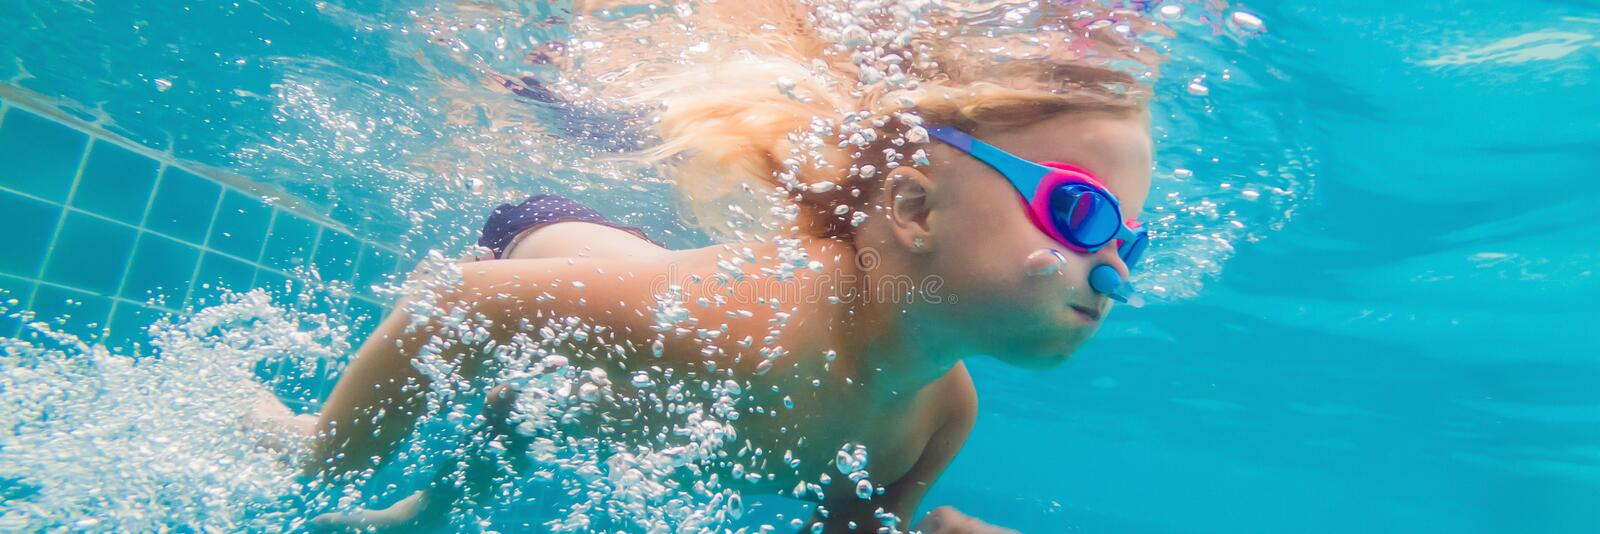 The little girl in the water park swimming underwater and smiling BANNER, LONG FORMAT stock photography